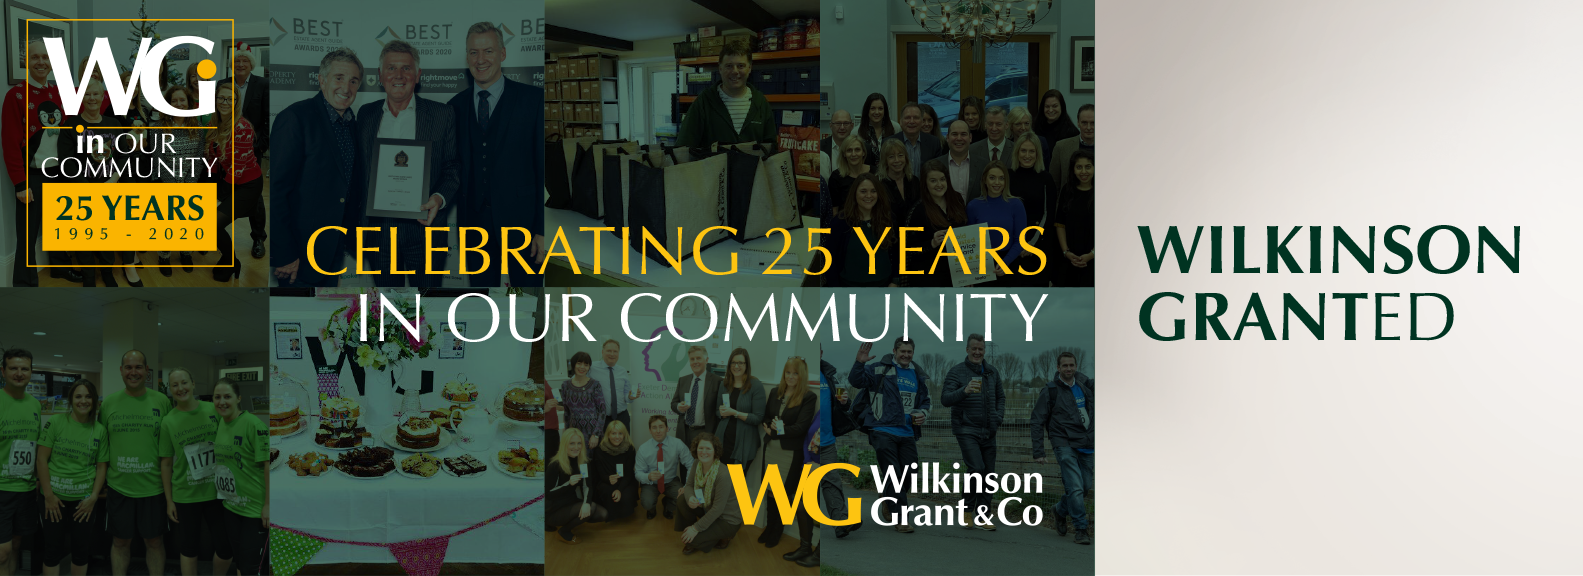 25 Years IN OUR COMMUNITY WILKINSON GRANTED